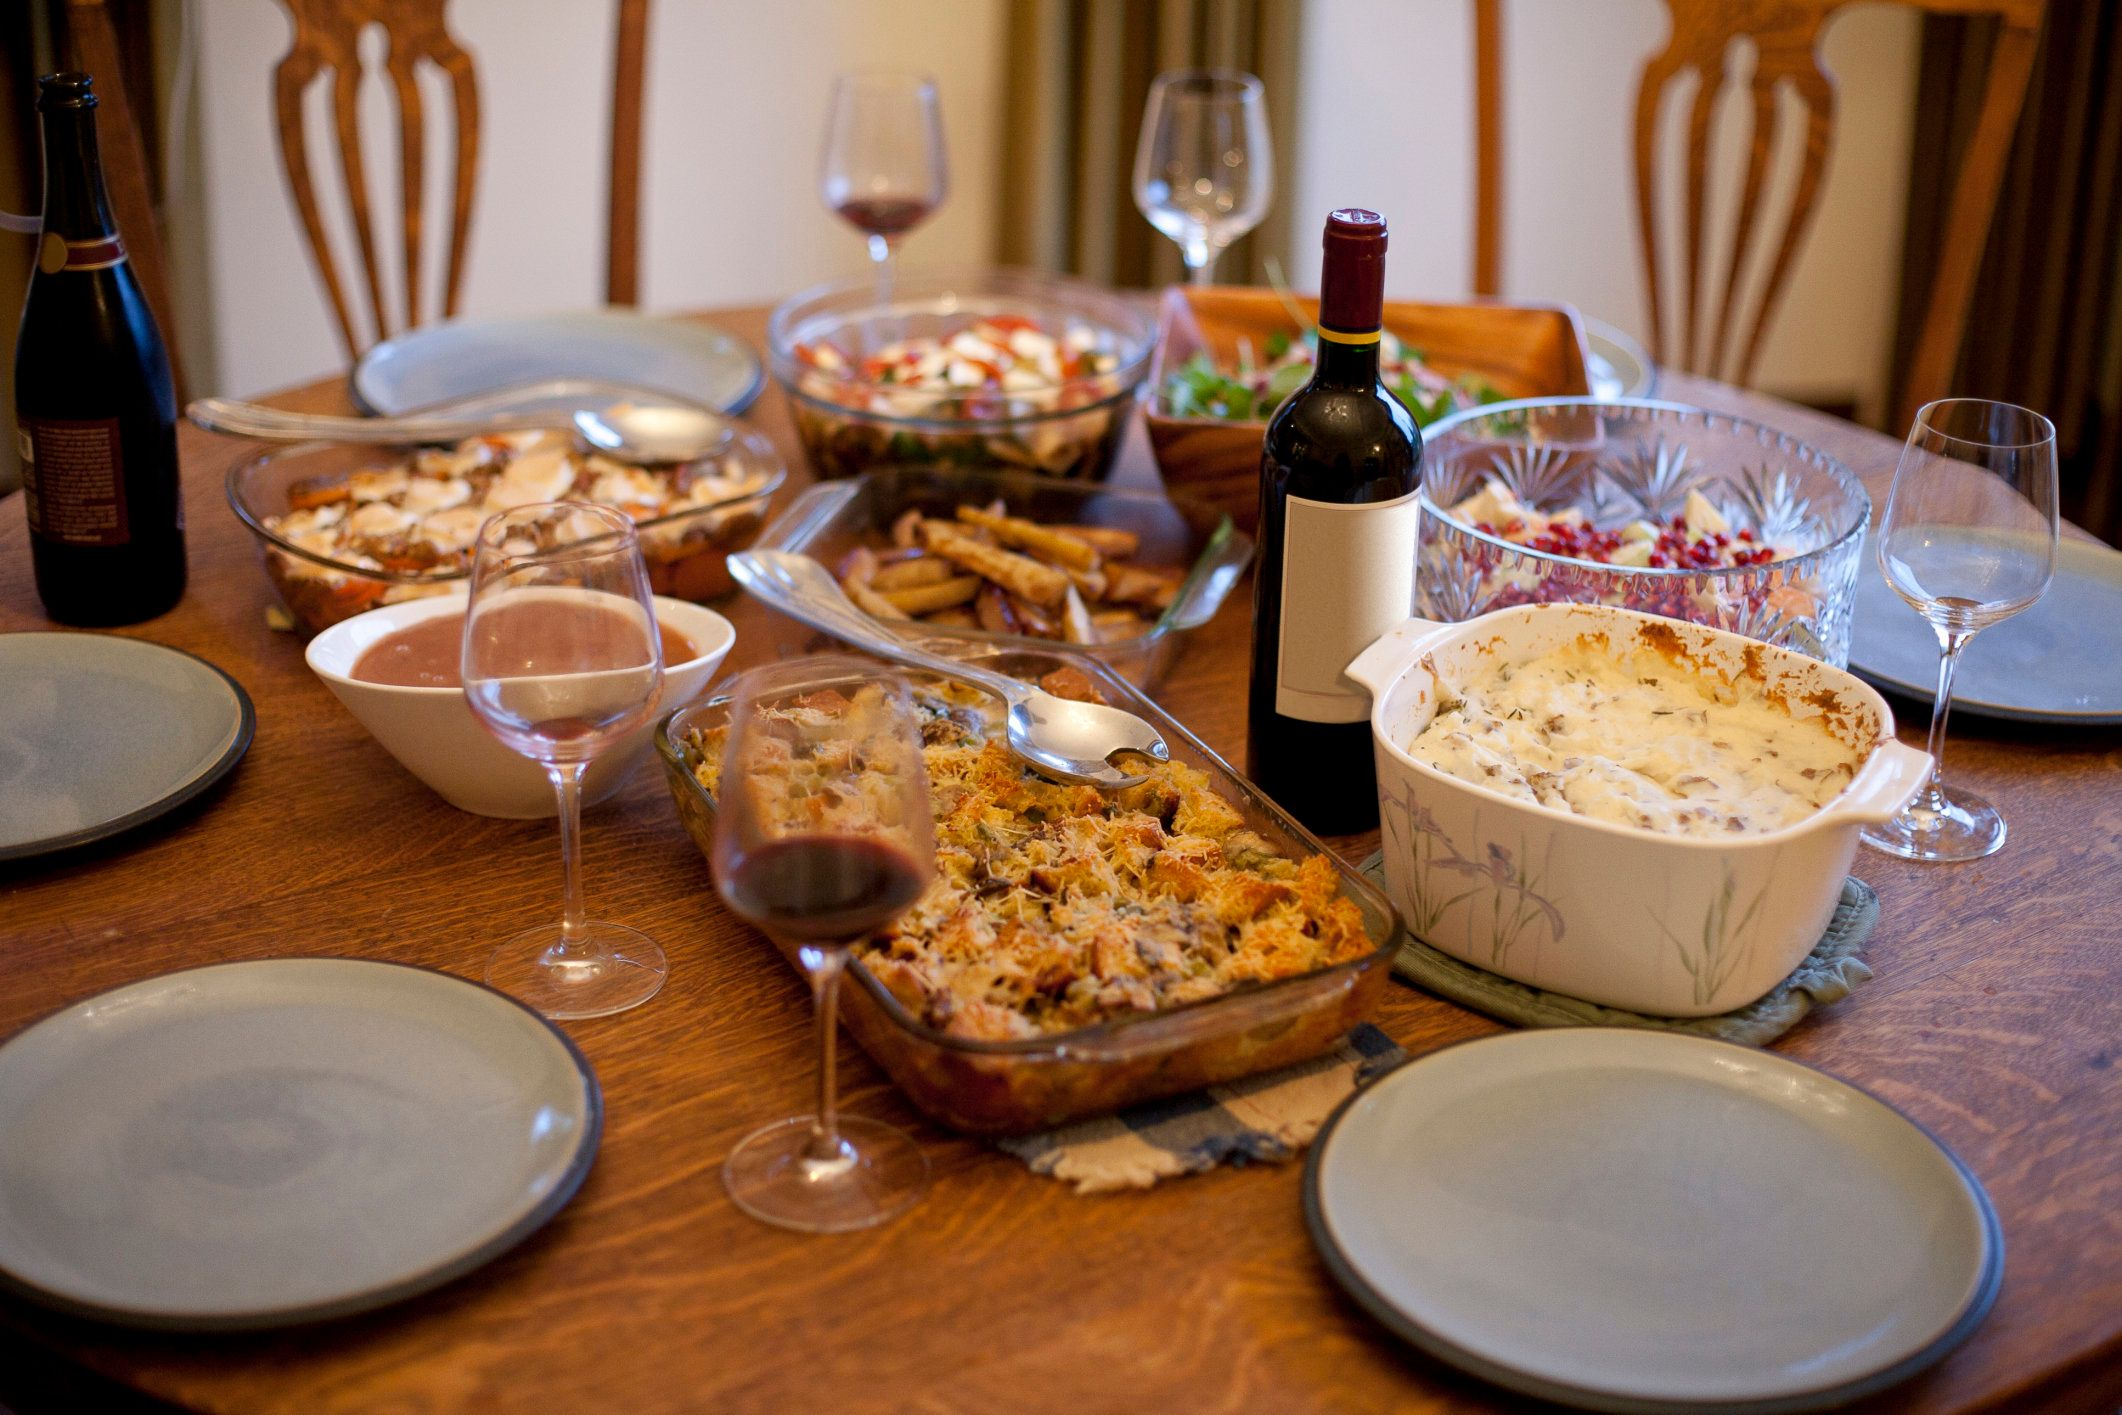 A tabletop is full of organic and locally made Thanksgiving dishes at a home in Portland, Oregon.